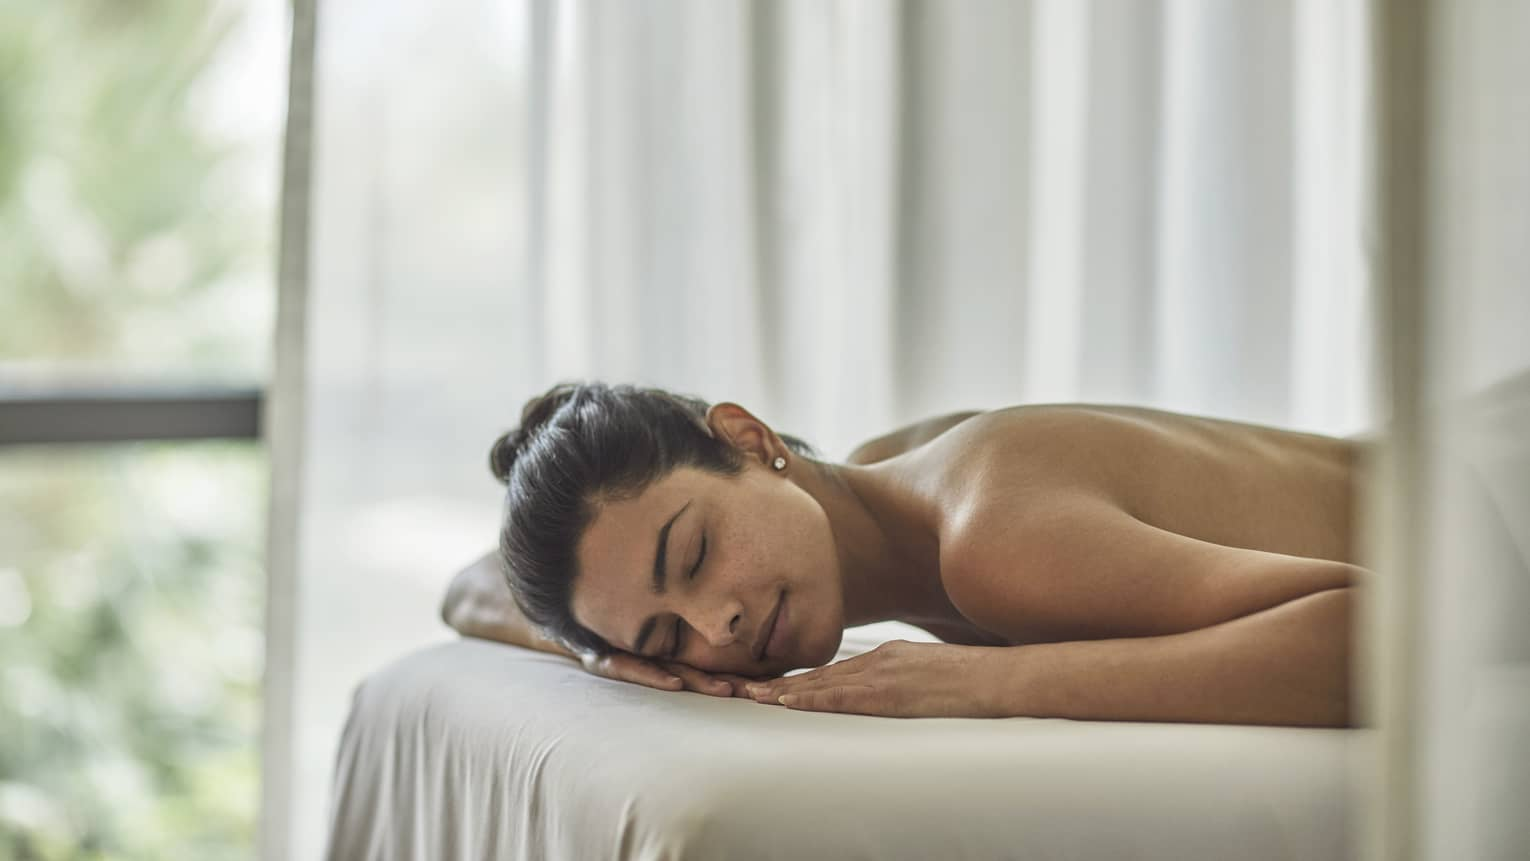 A woman relaxes on white sheets in preparation of a spa treatment